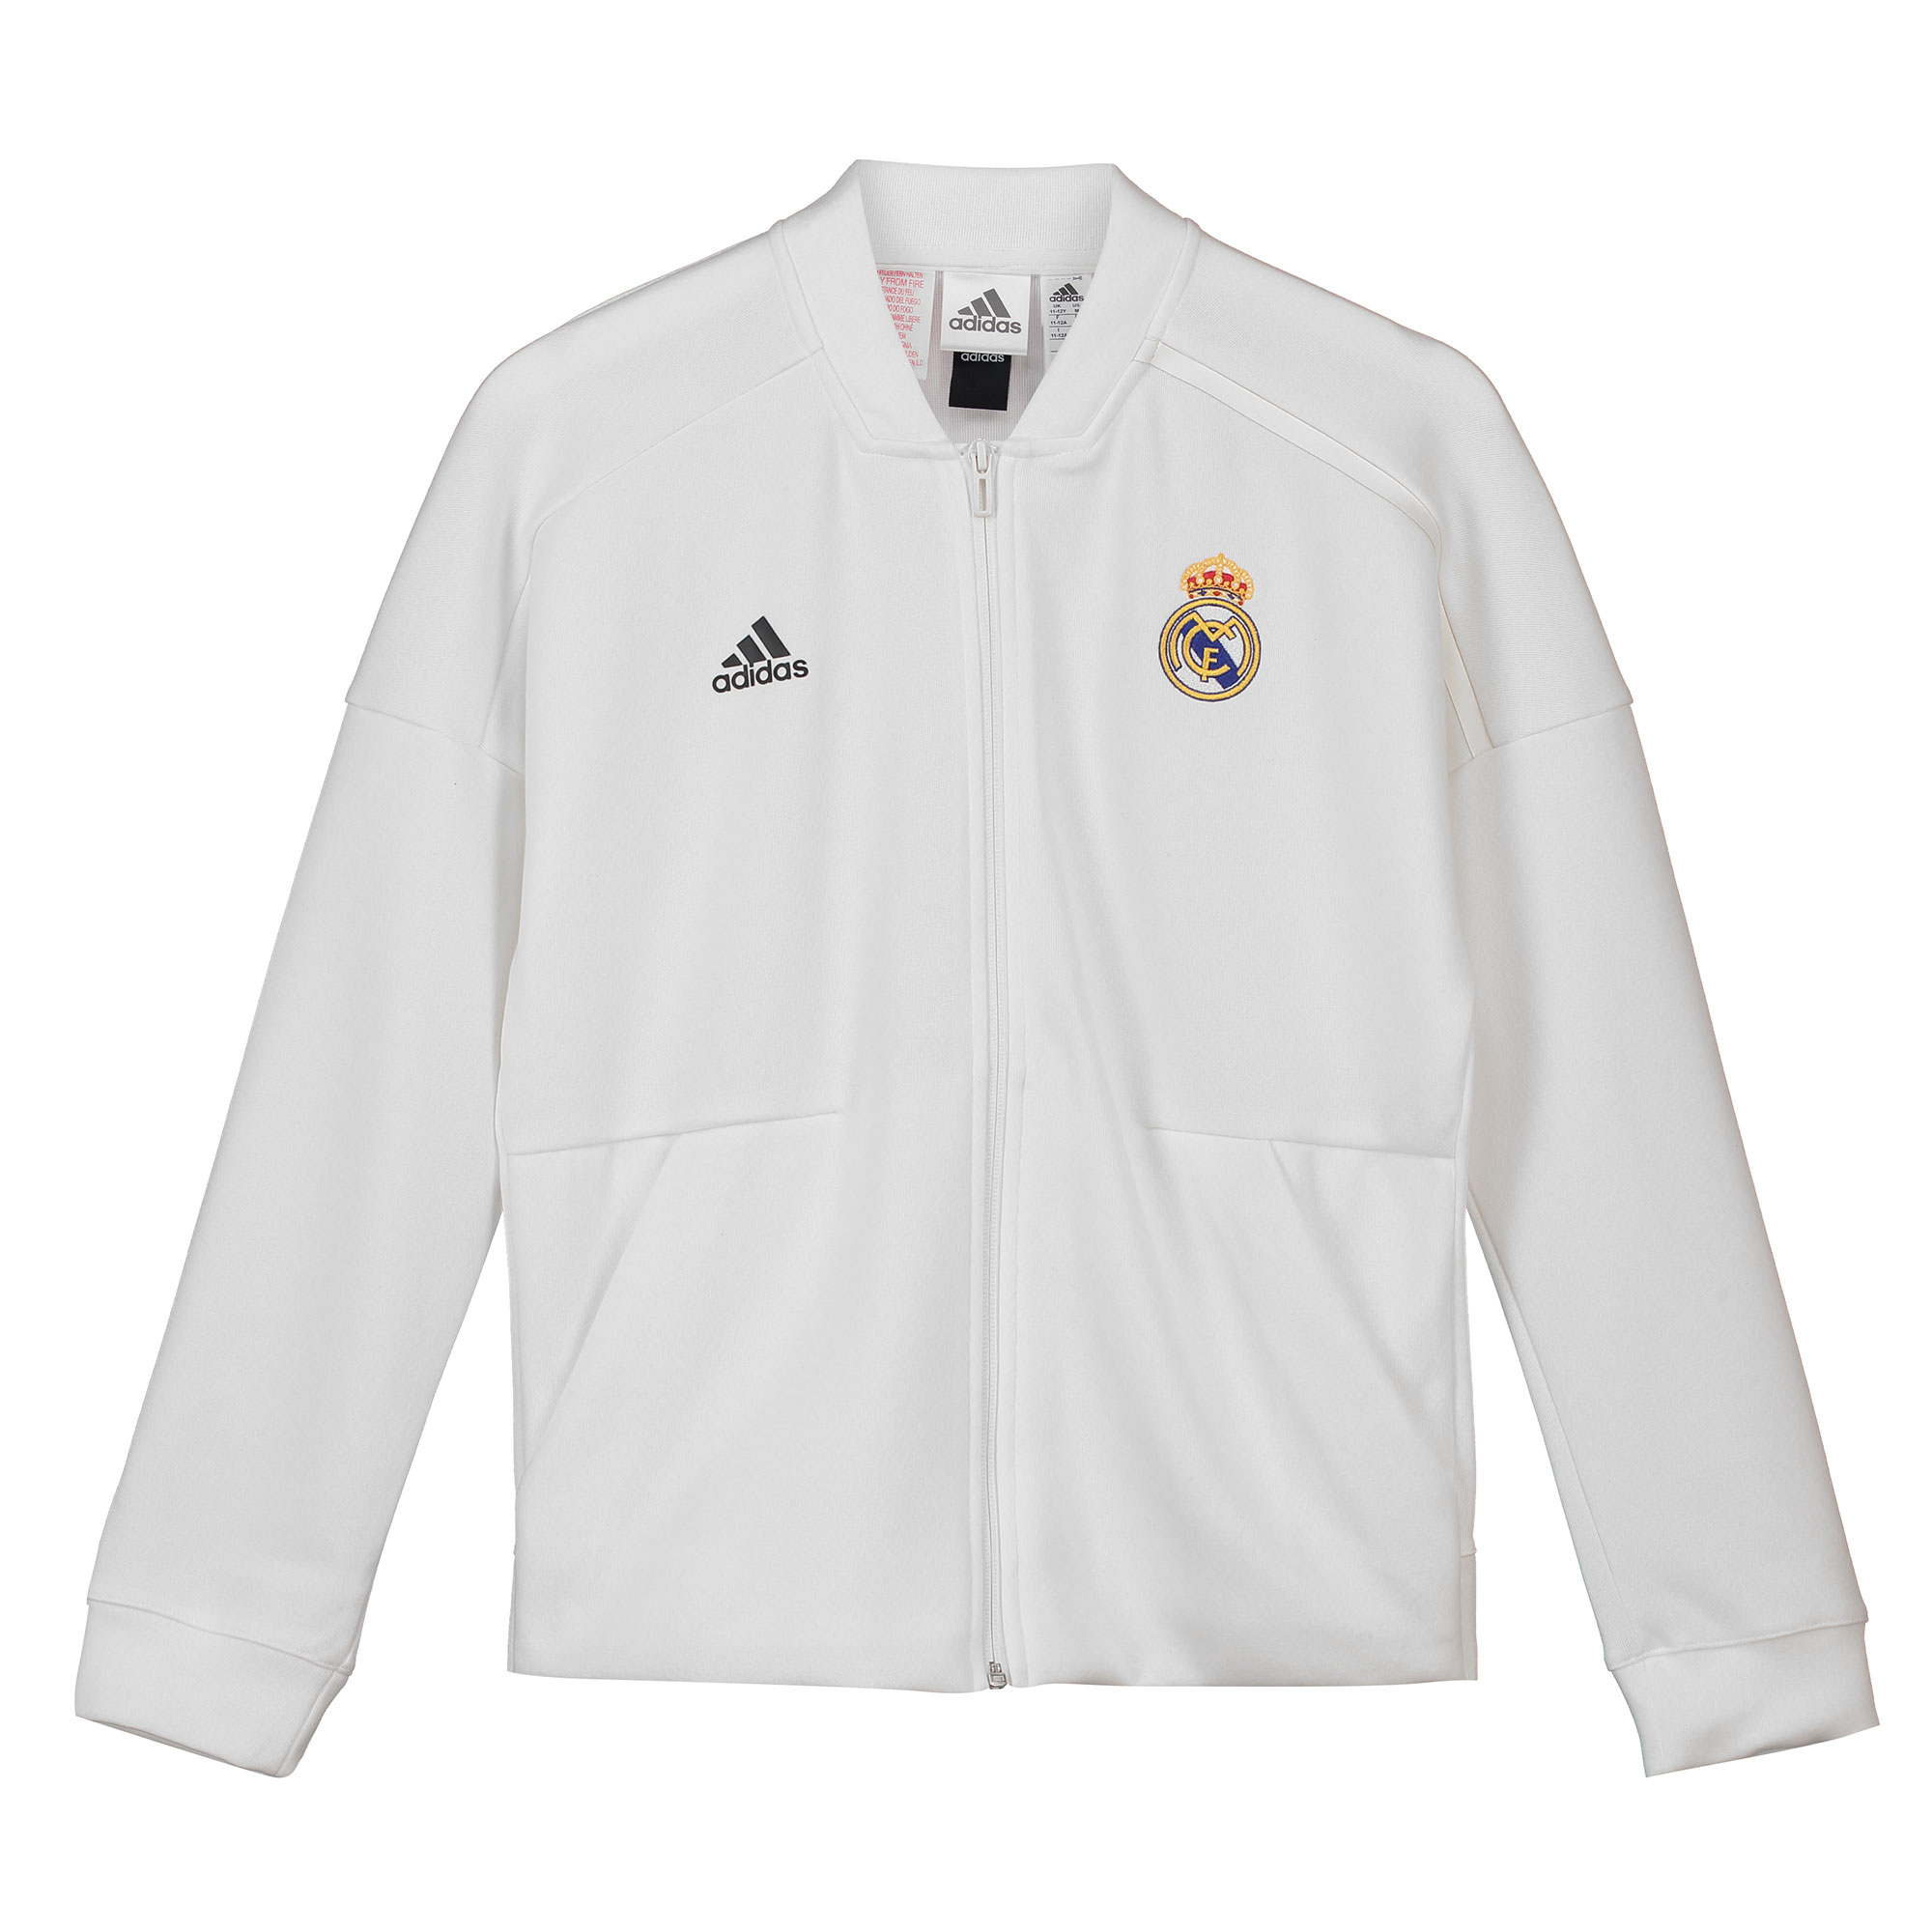 Chaqueta Anthem ZNE de la equipación local del Real Madrid en blanco para niños